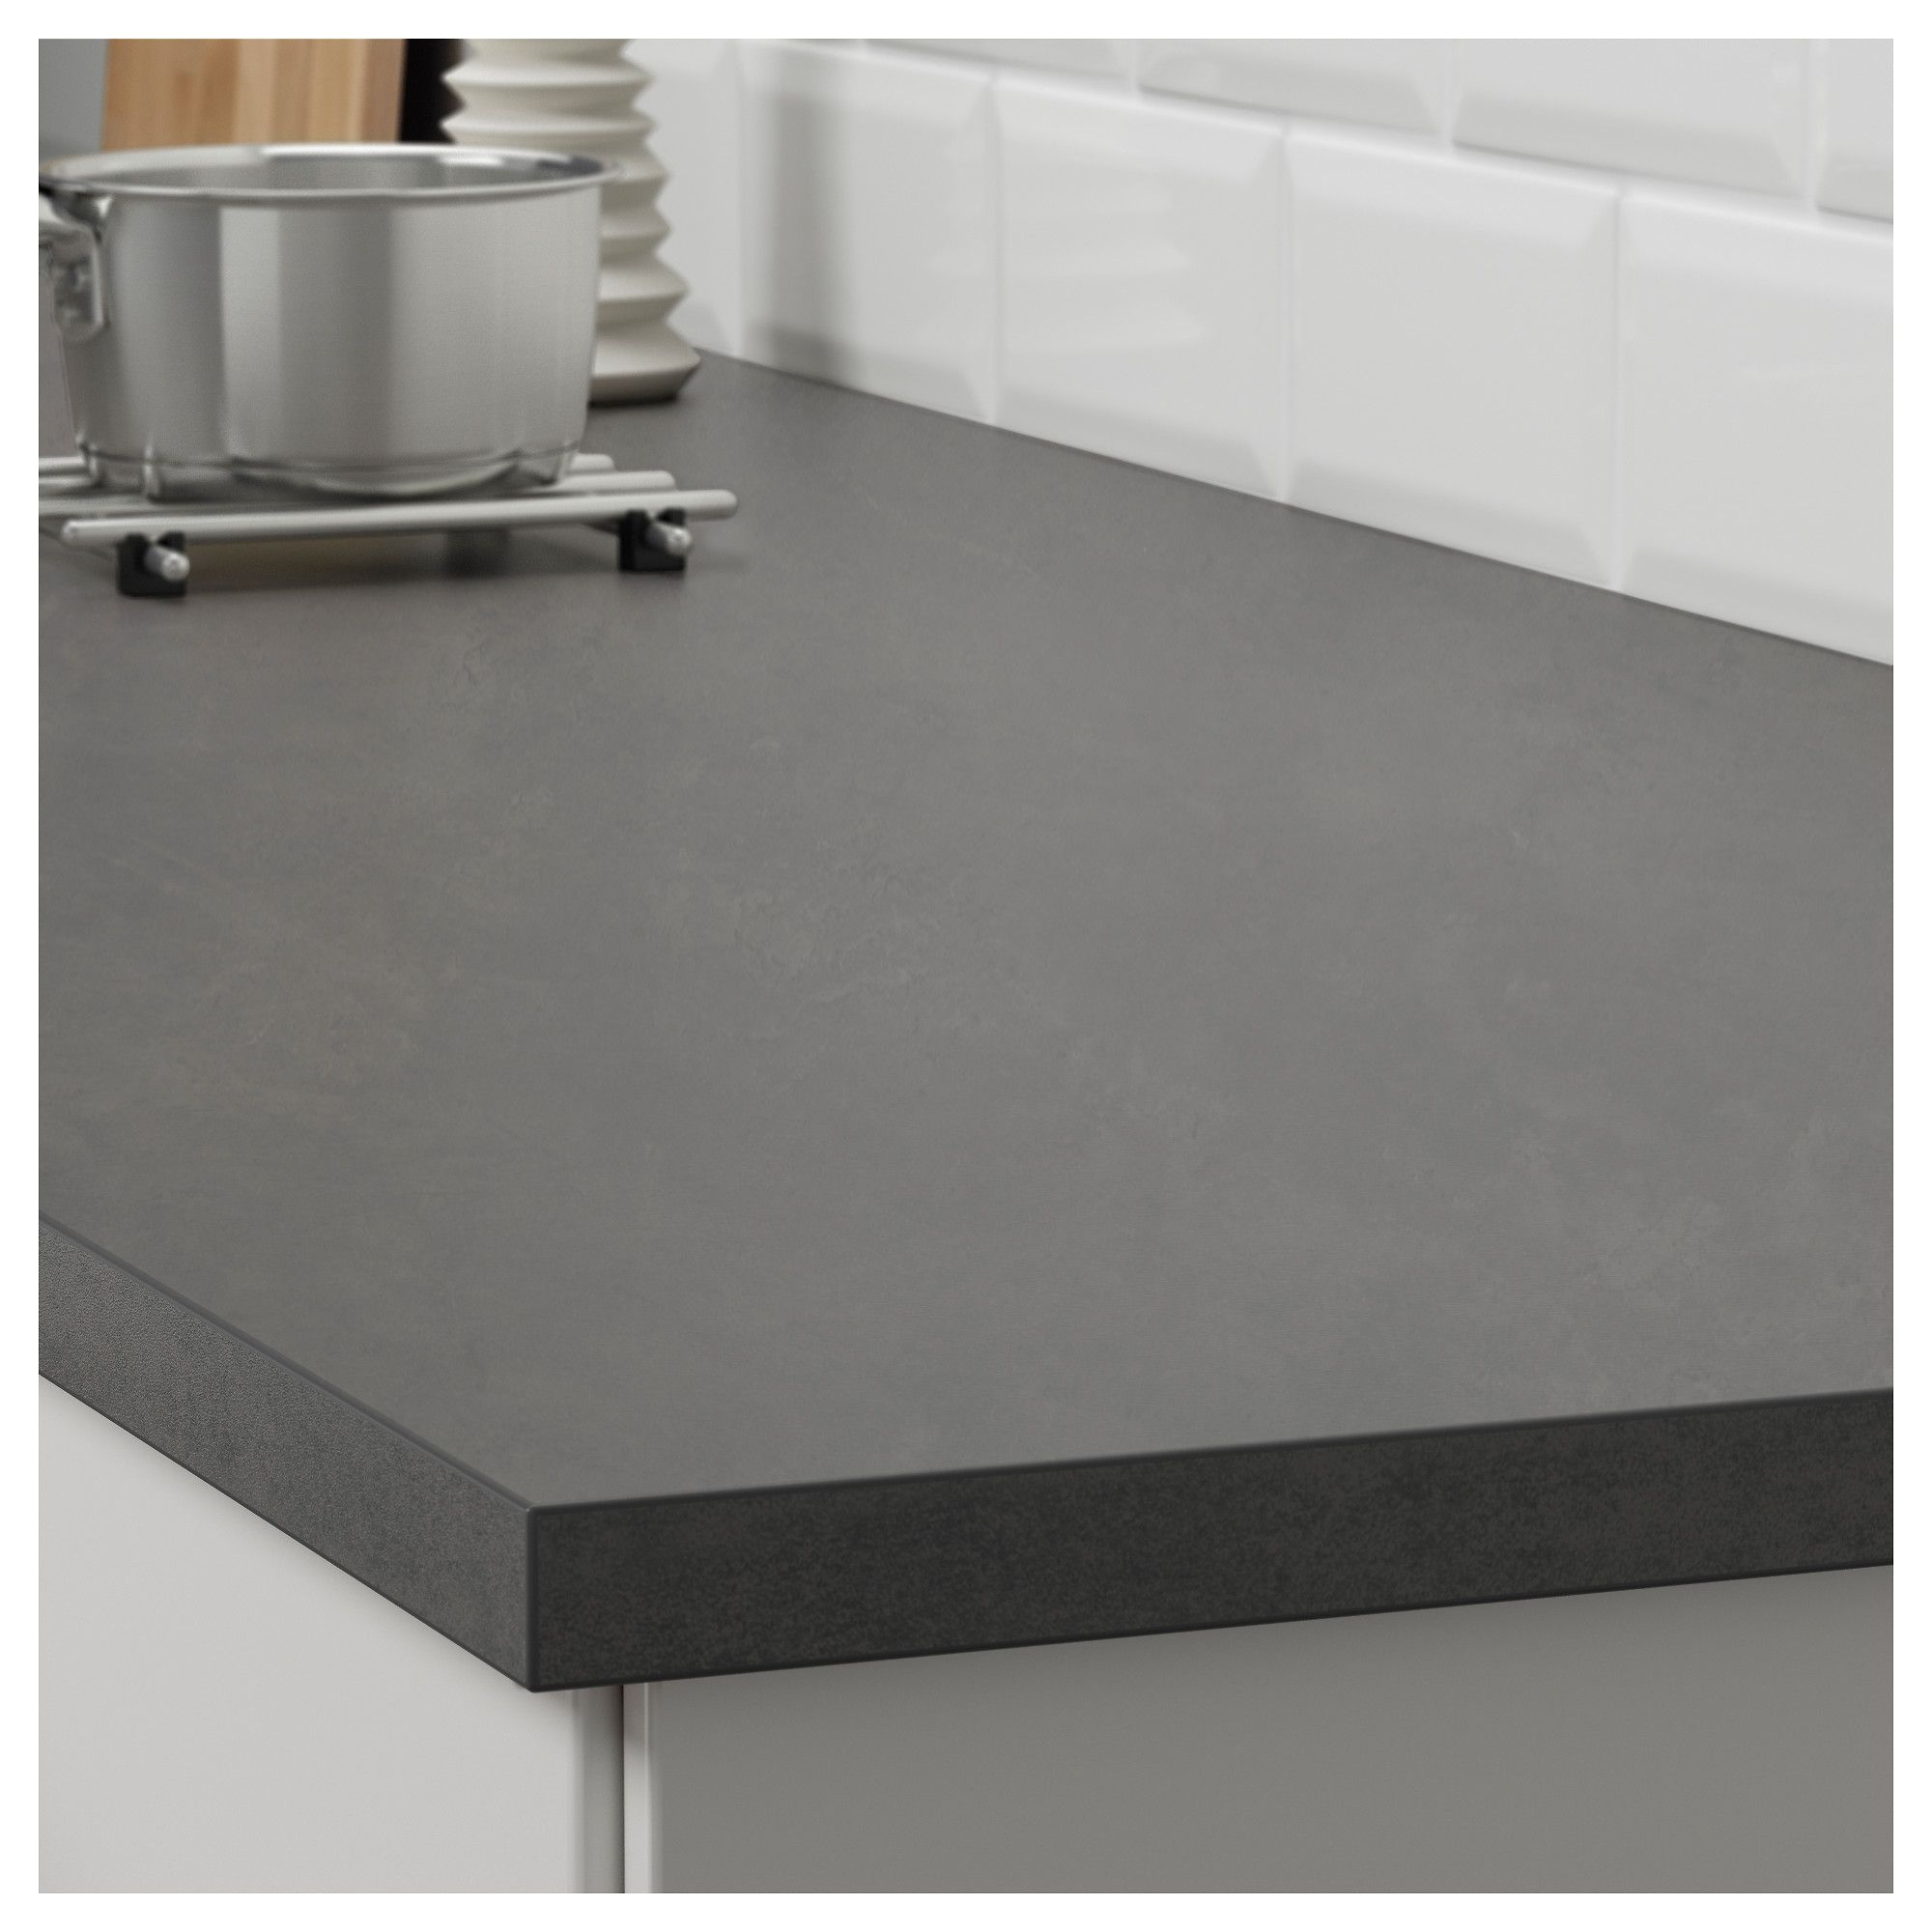 Shop For Furniture Home Accessories More Laminate Countertops